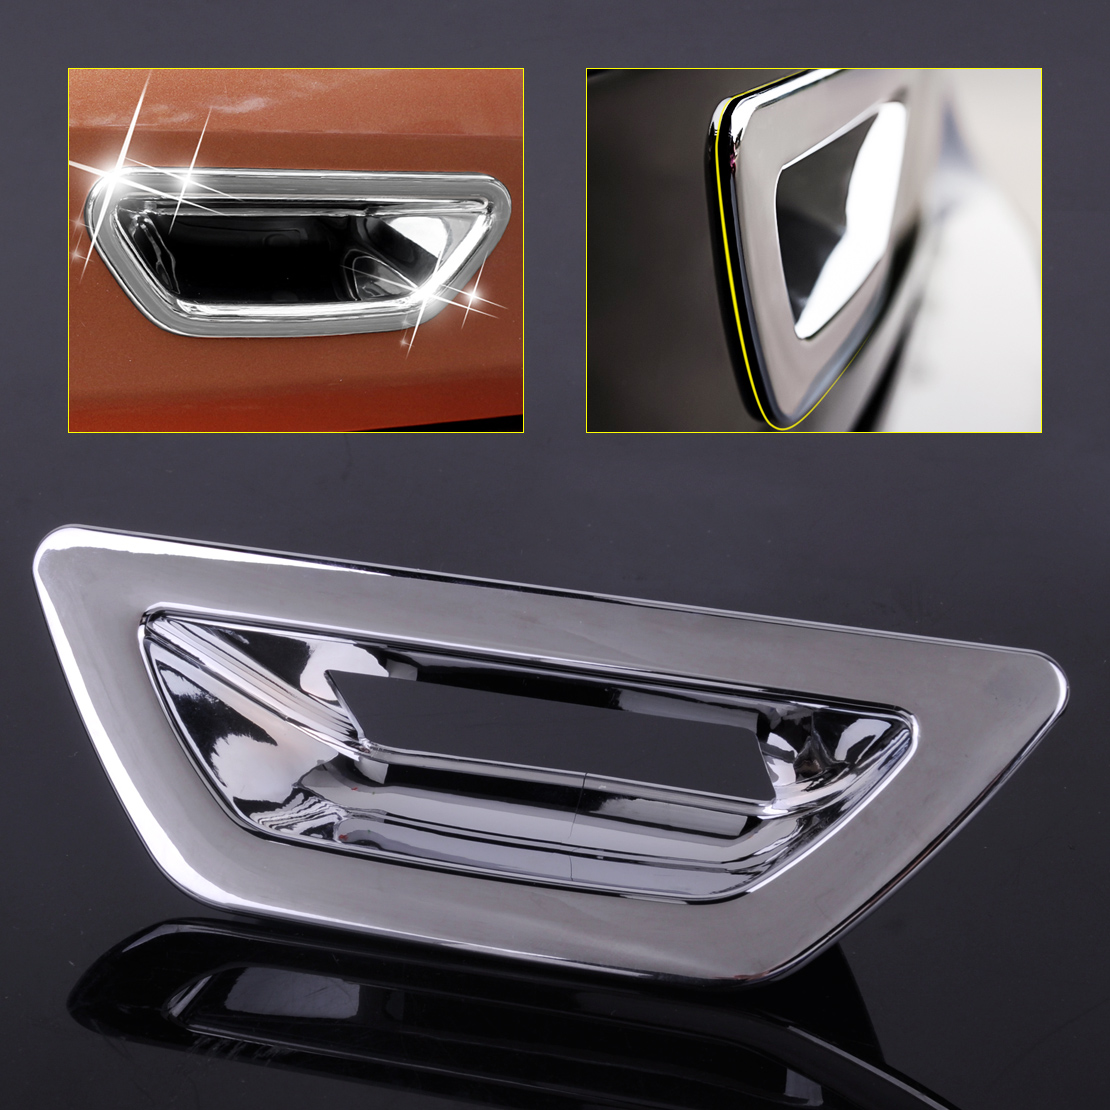 Chrome Door Handle Bowl Cup Cover For 2014-2017 Nissan X-Trail Rogue 8PCS T32